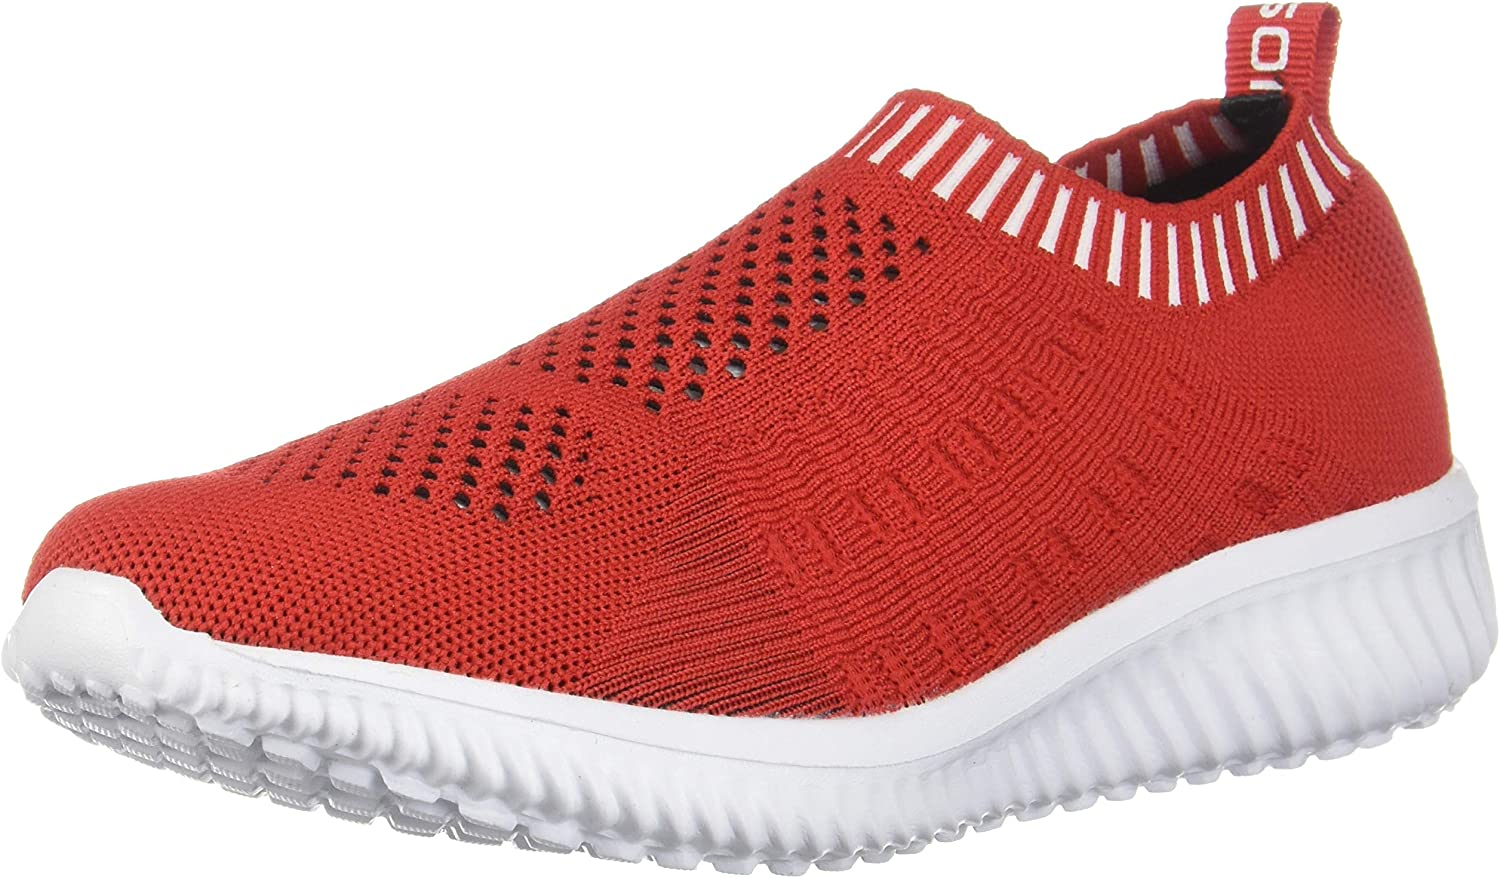 Konhill Women's Lightweight Casual Walking Athletic shoes Breathable Mesh Running Slip-On Sneakers, Red,39